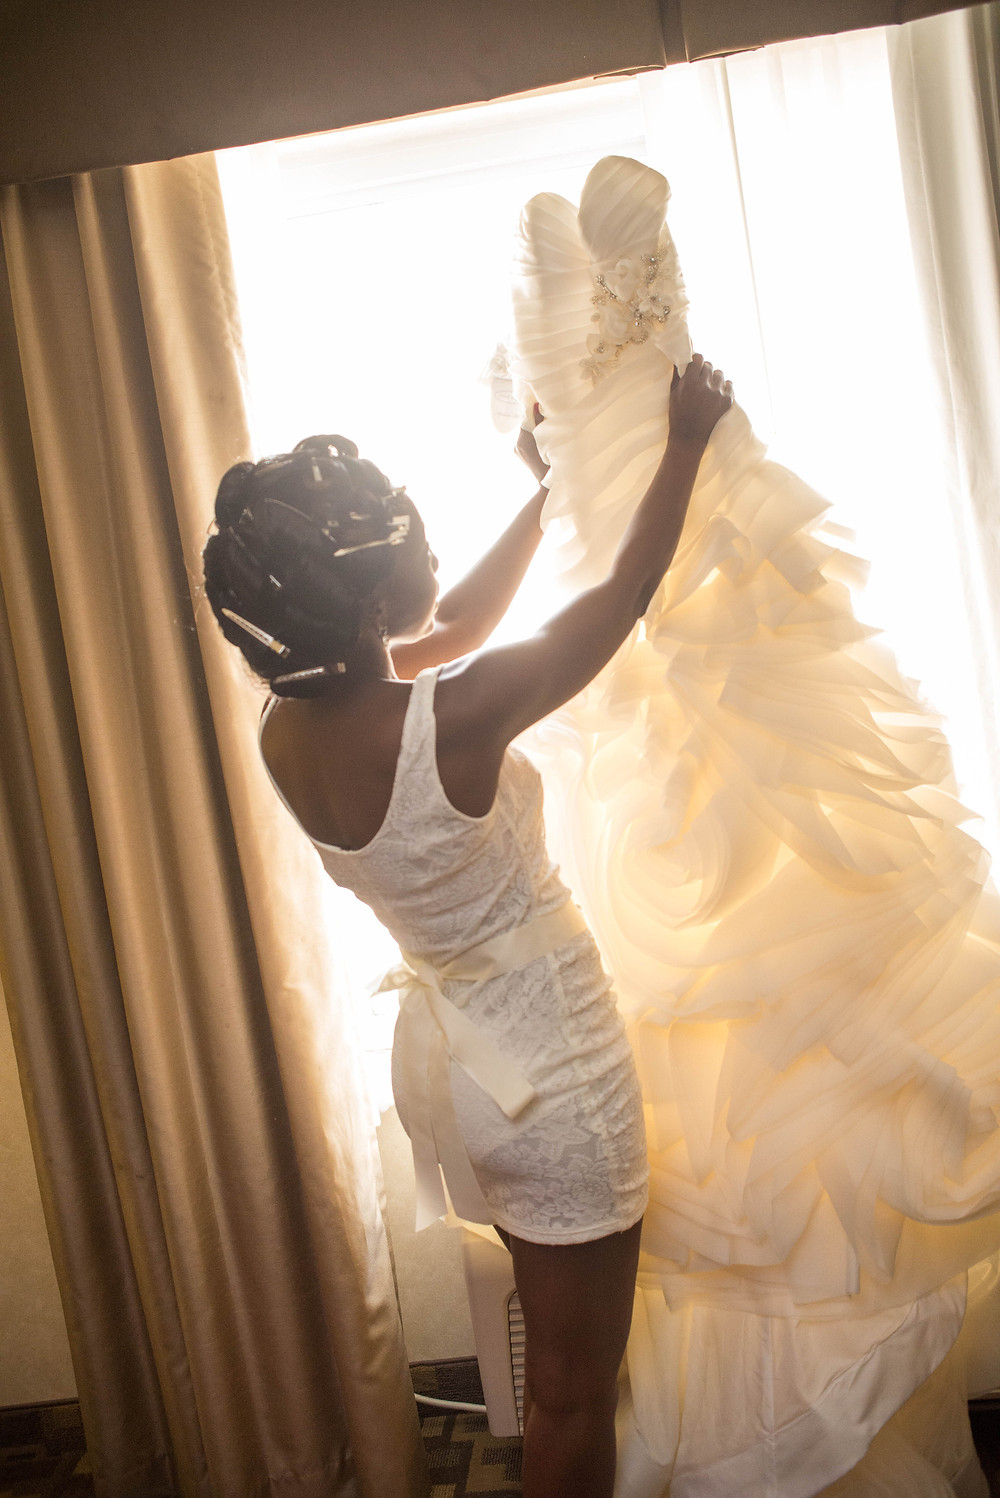 Me looking at my wedding gown.